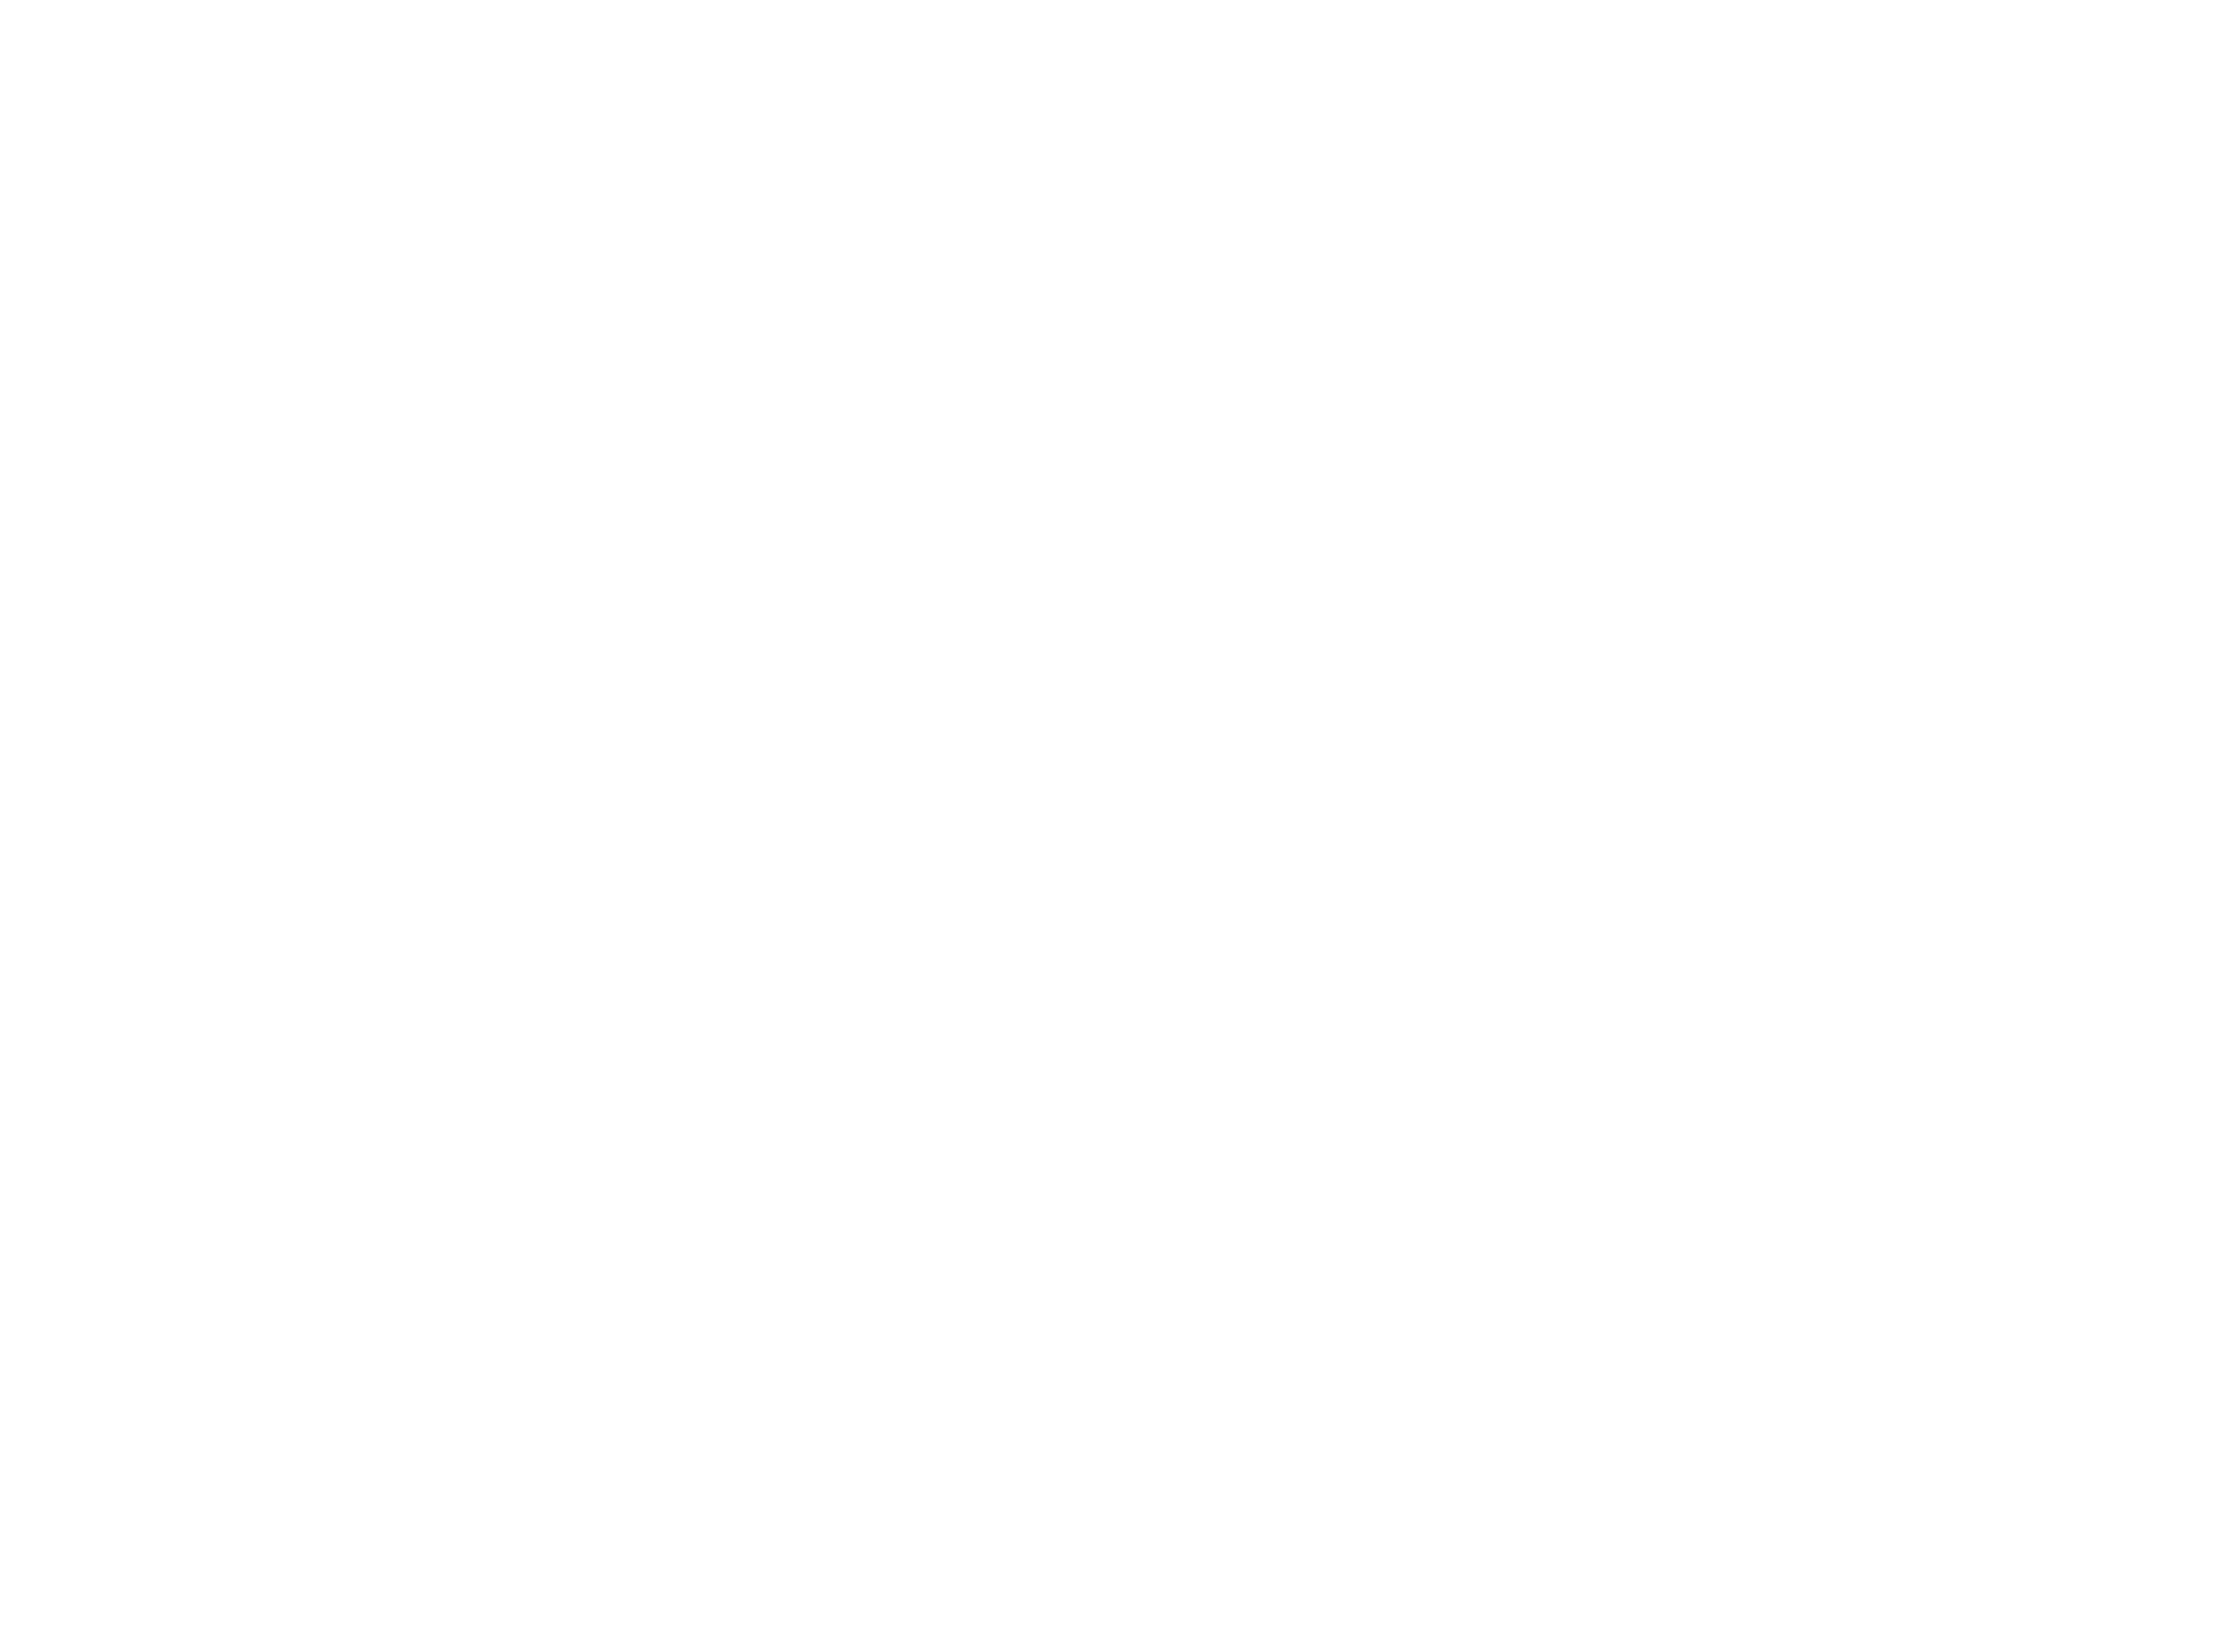 EquiMotion